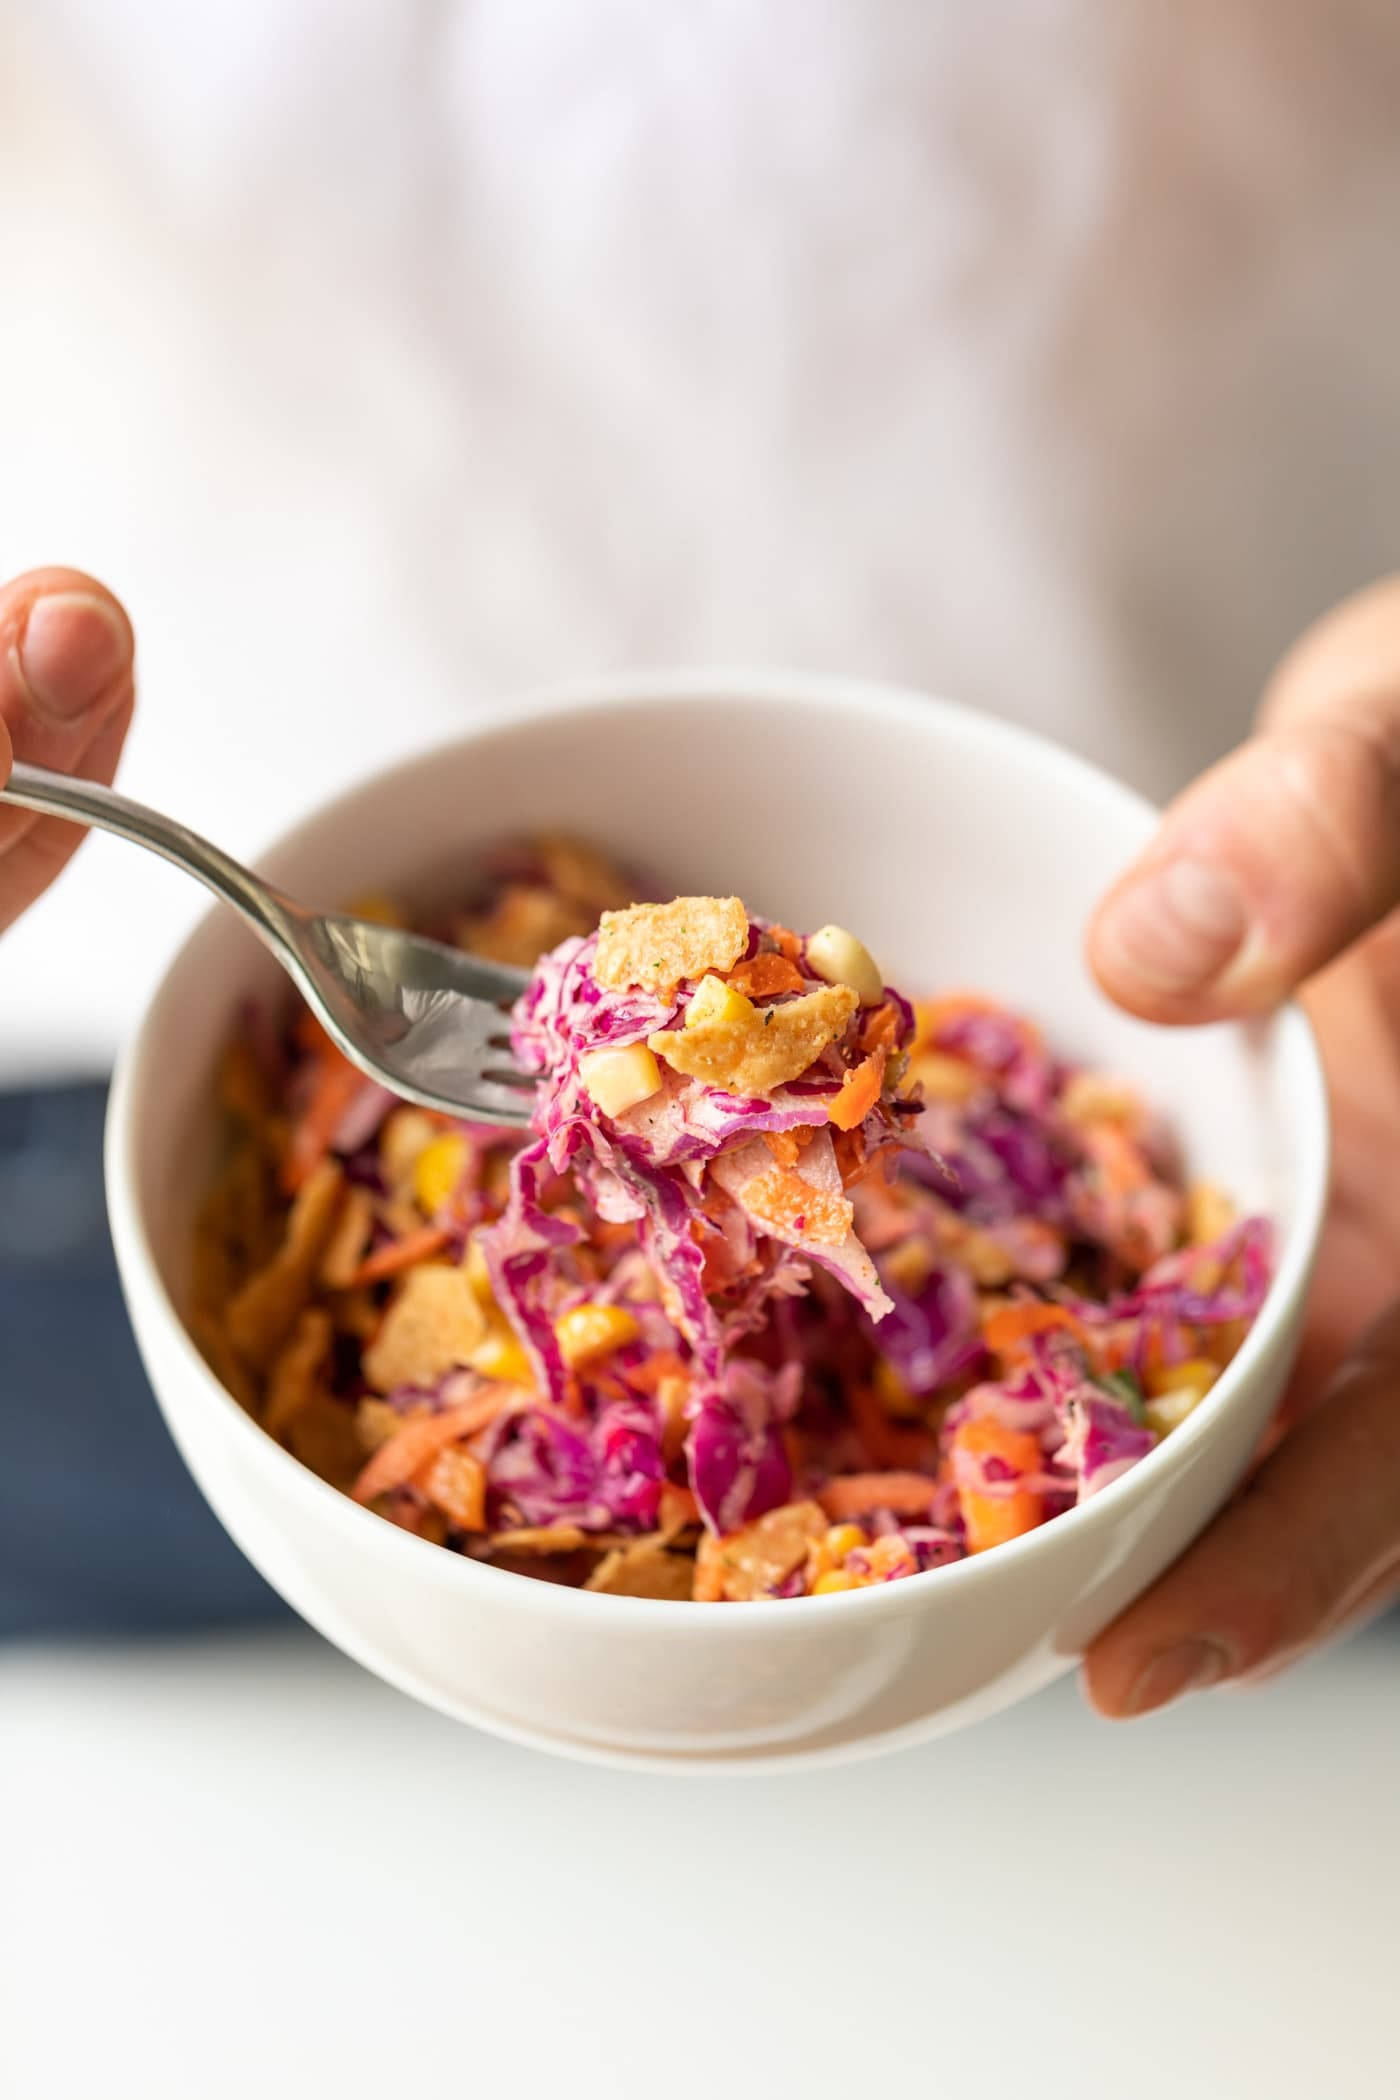 Two hands holding bowl filled with coleslaw made from red cabbage with fork holding bite